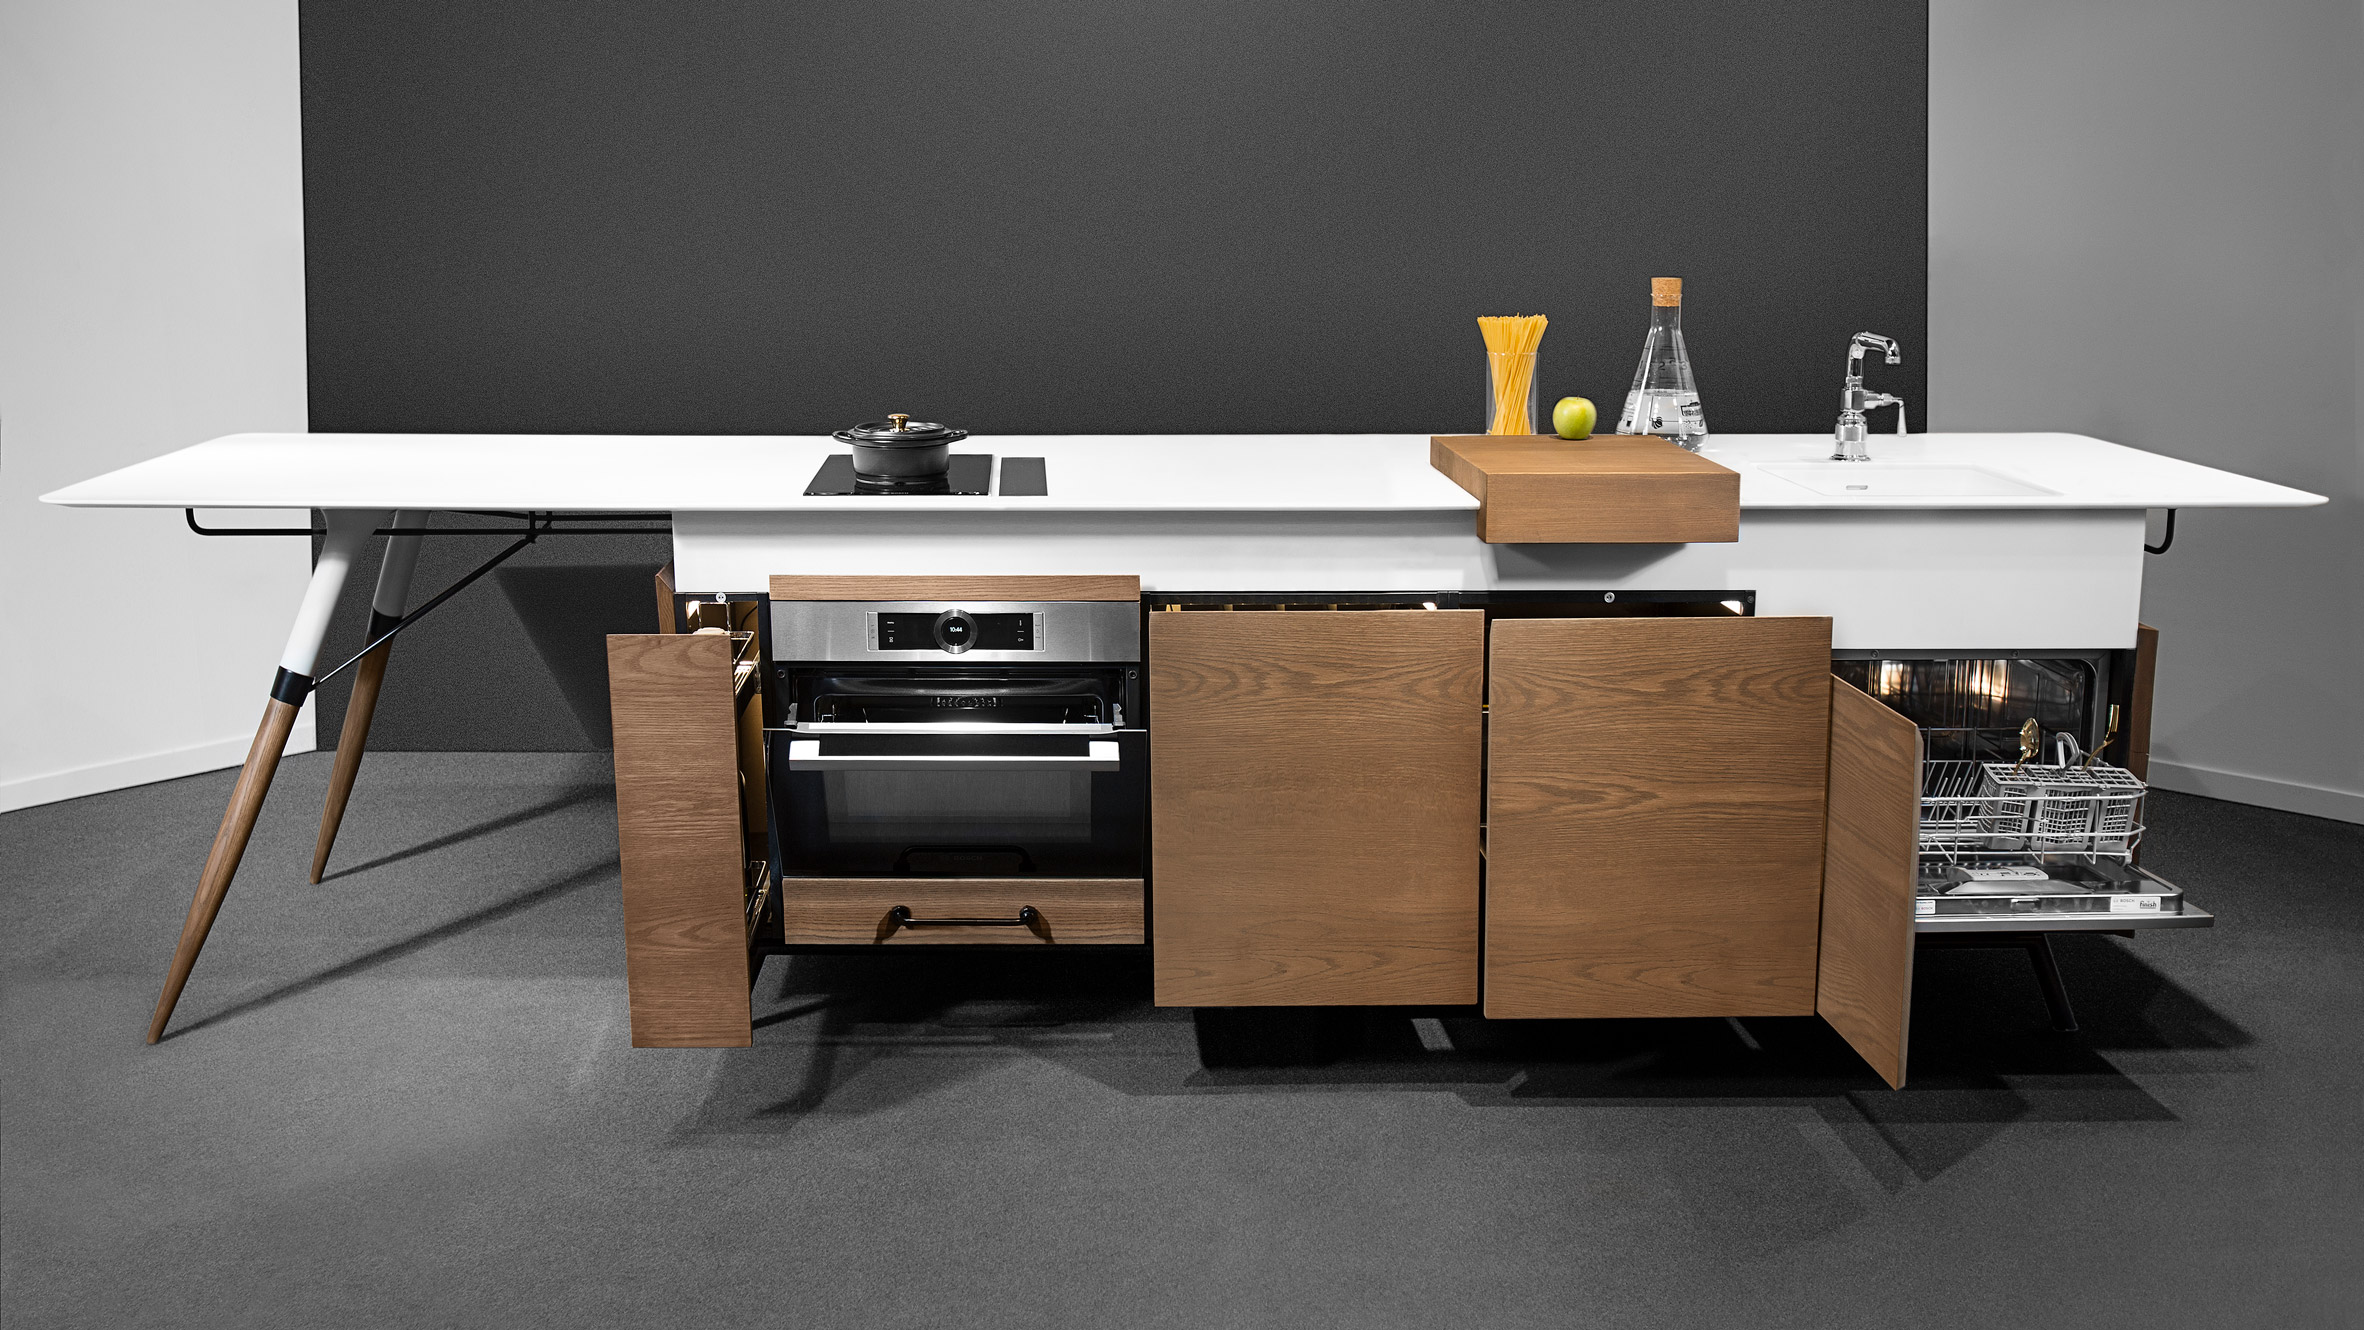 Space Saving For Kitchens Creates Space Saving Kitchen Unit For Millenials